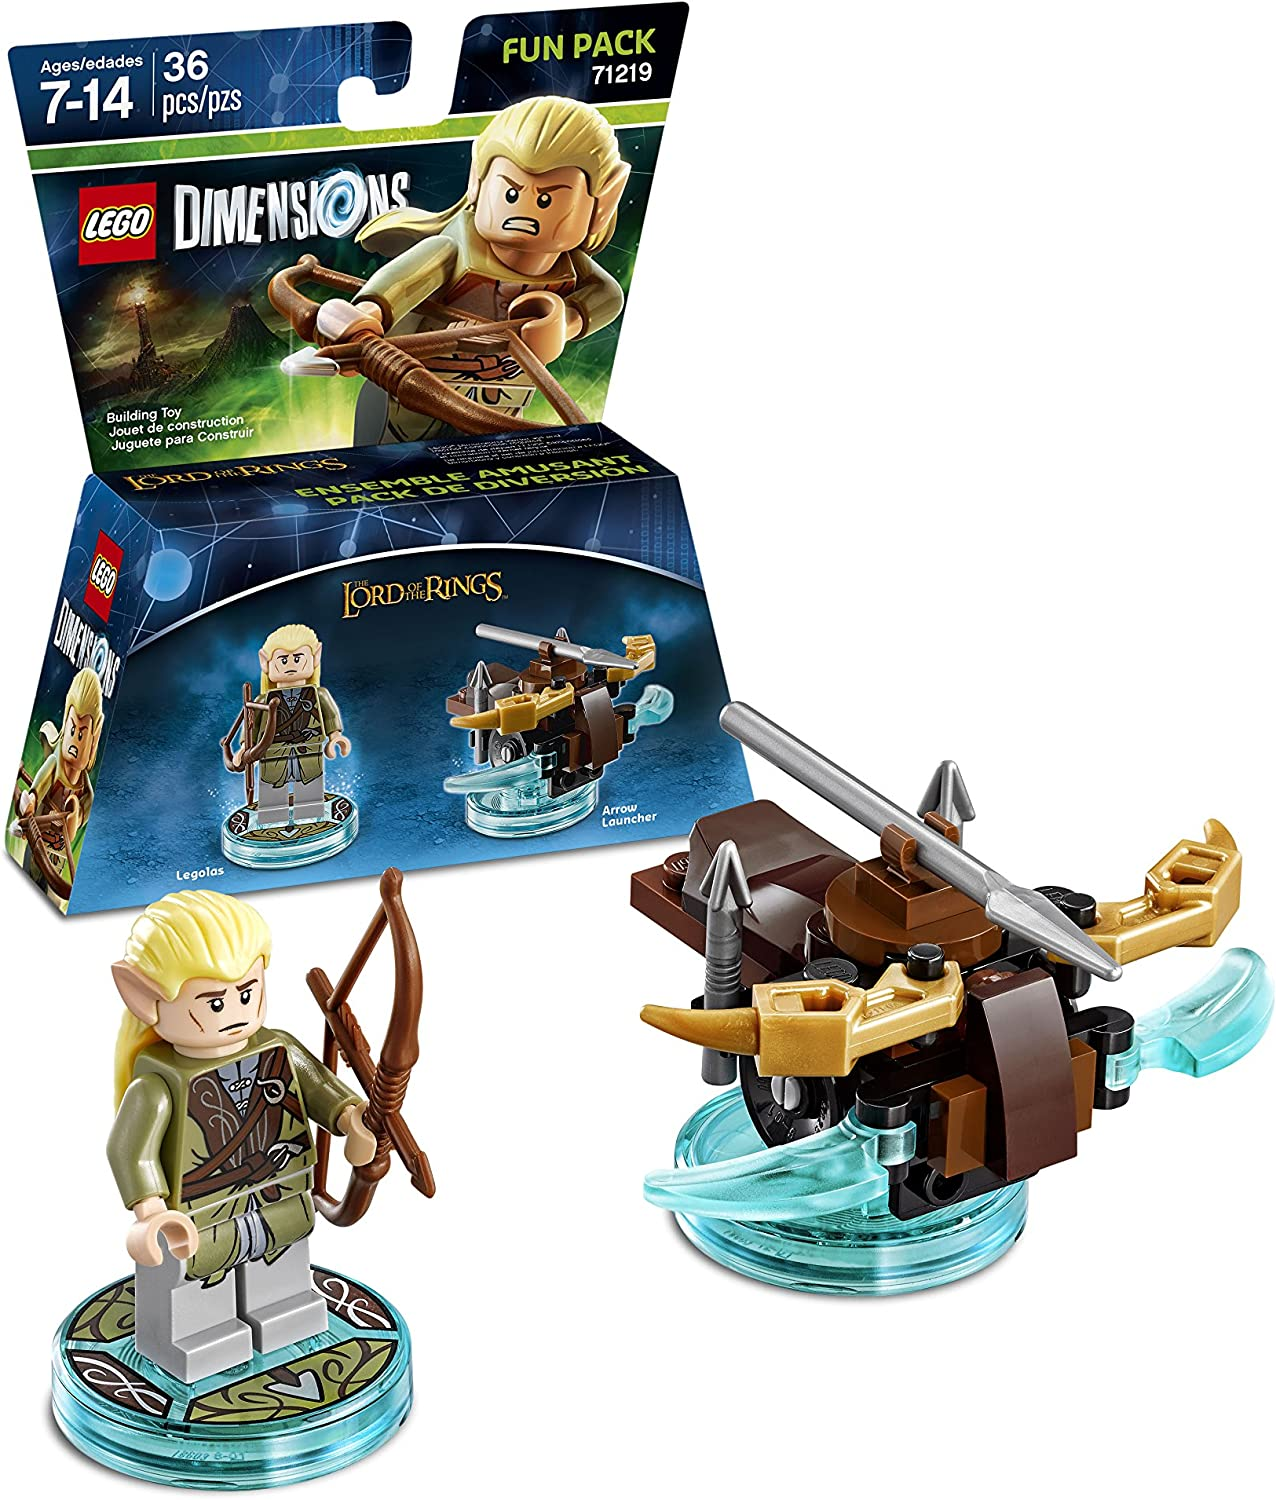 Lord Of The Rings Legolas Fun Pack - LEGO Dimensions by Warner ...